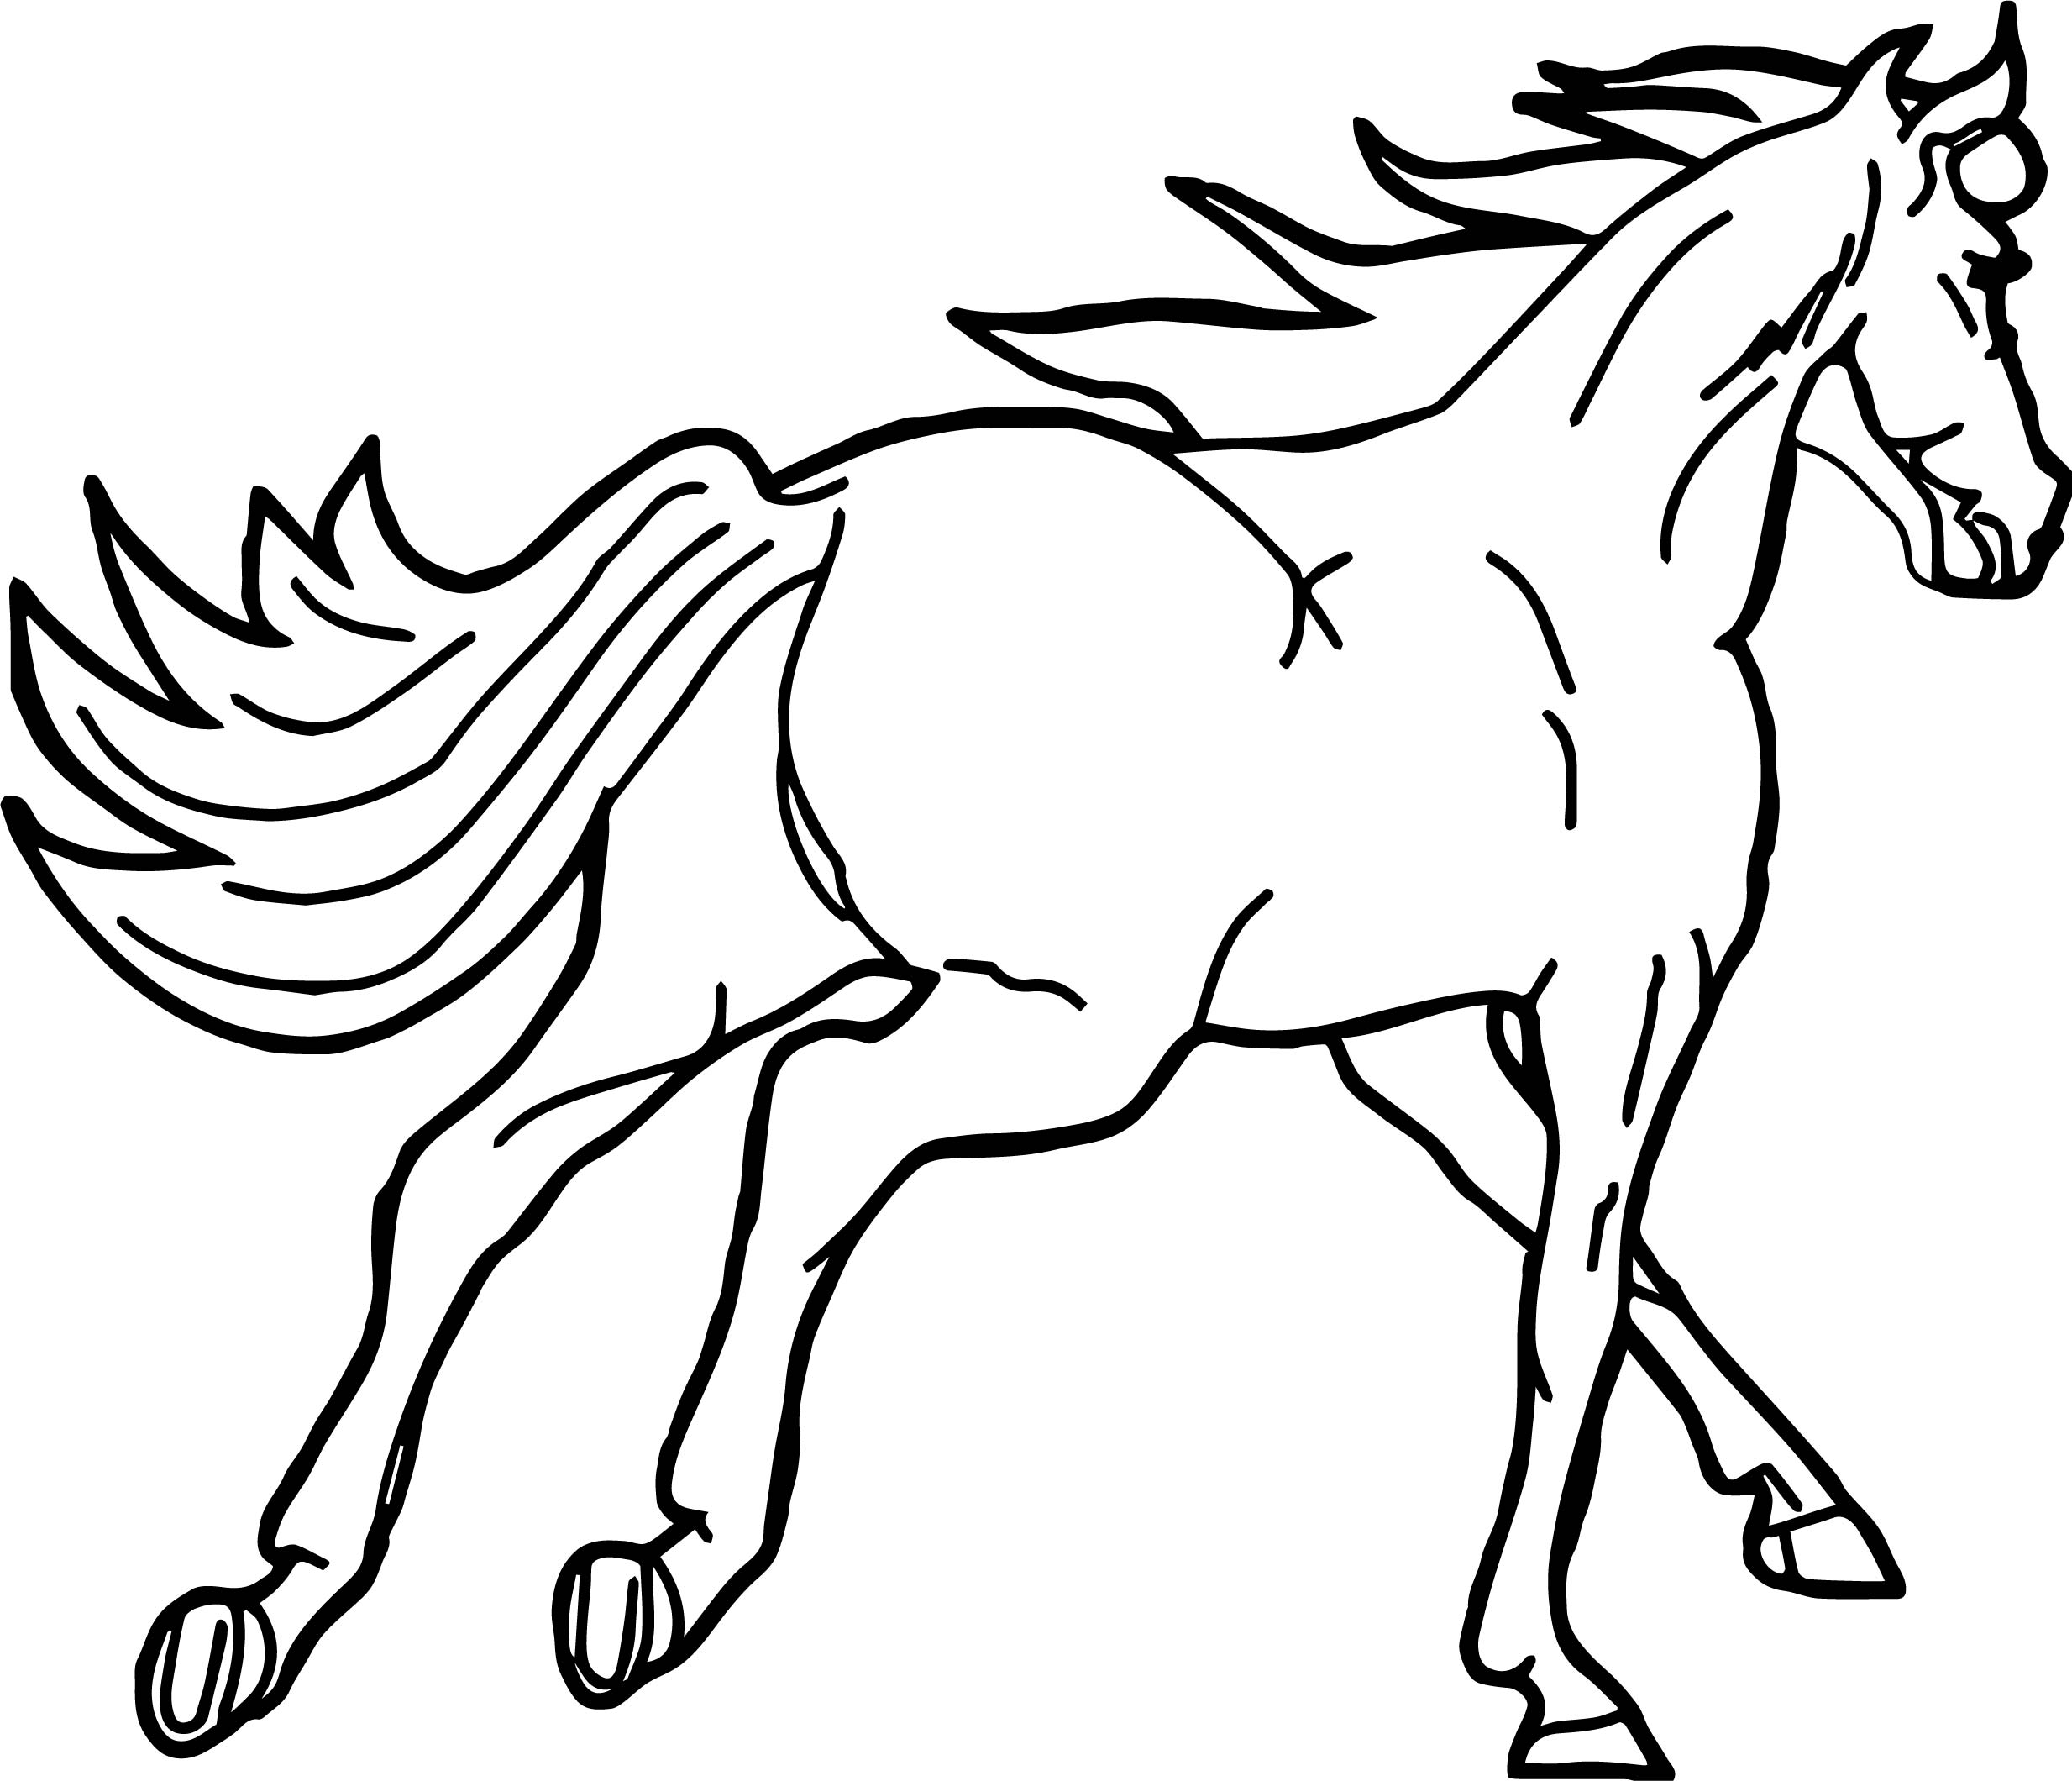 Fast Arabian Horse Coloring Page | Wecoloringpage.com